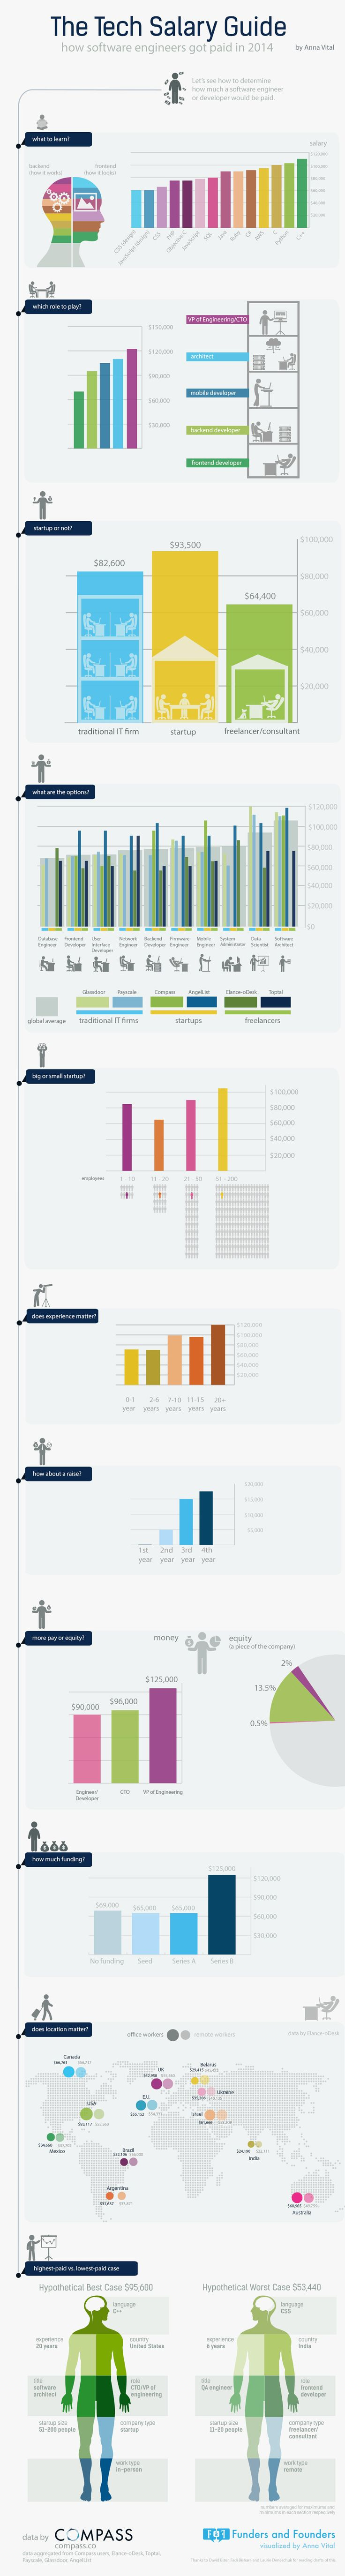 Need a Software Engineer? Here's How Much You Can Expect to Pay. (Infographic)